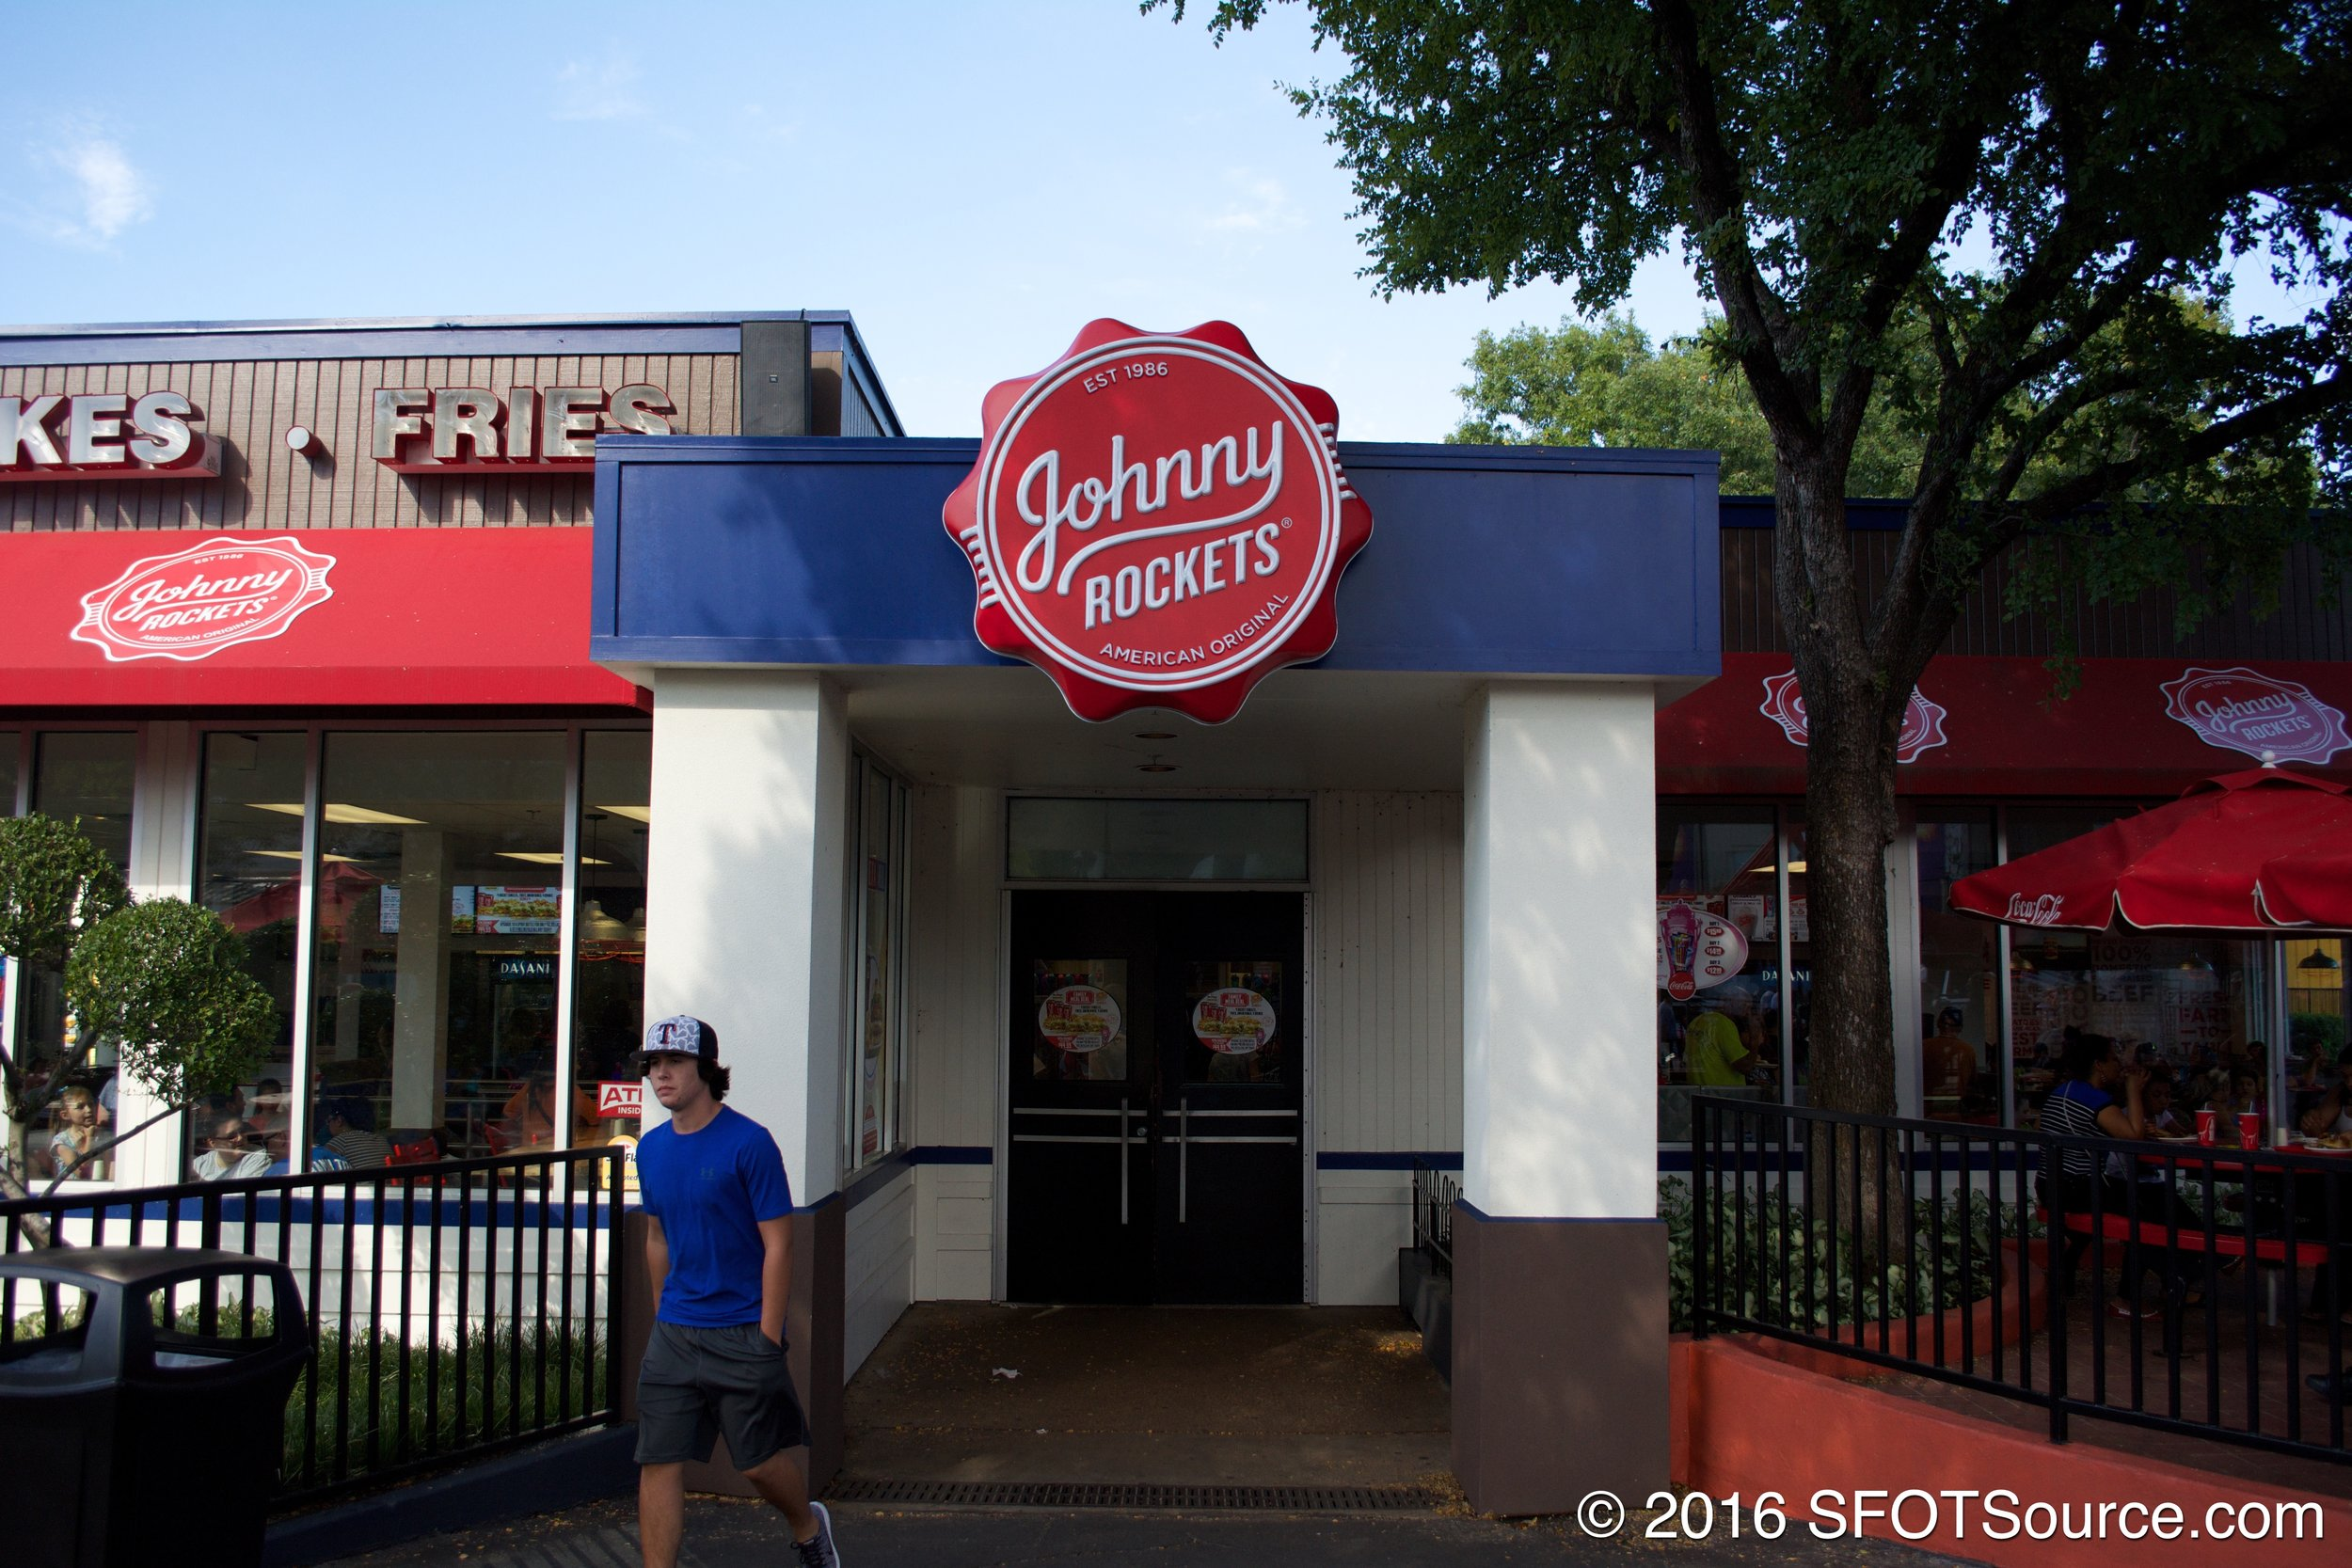 The main entrance to Johnny Rockets.